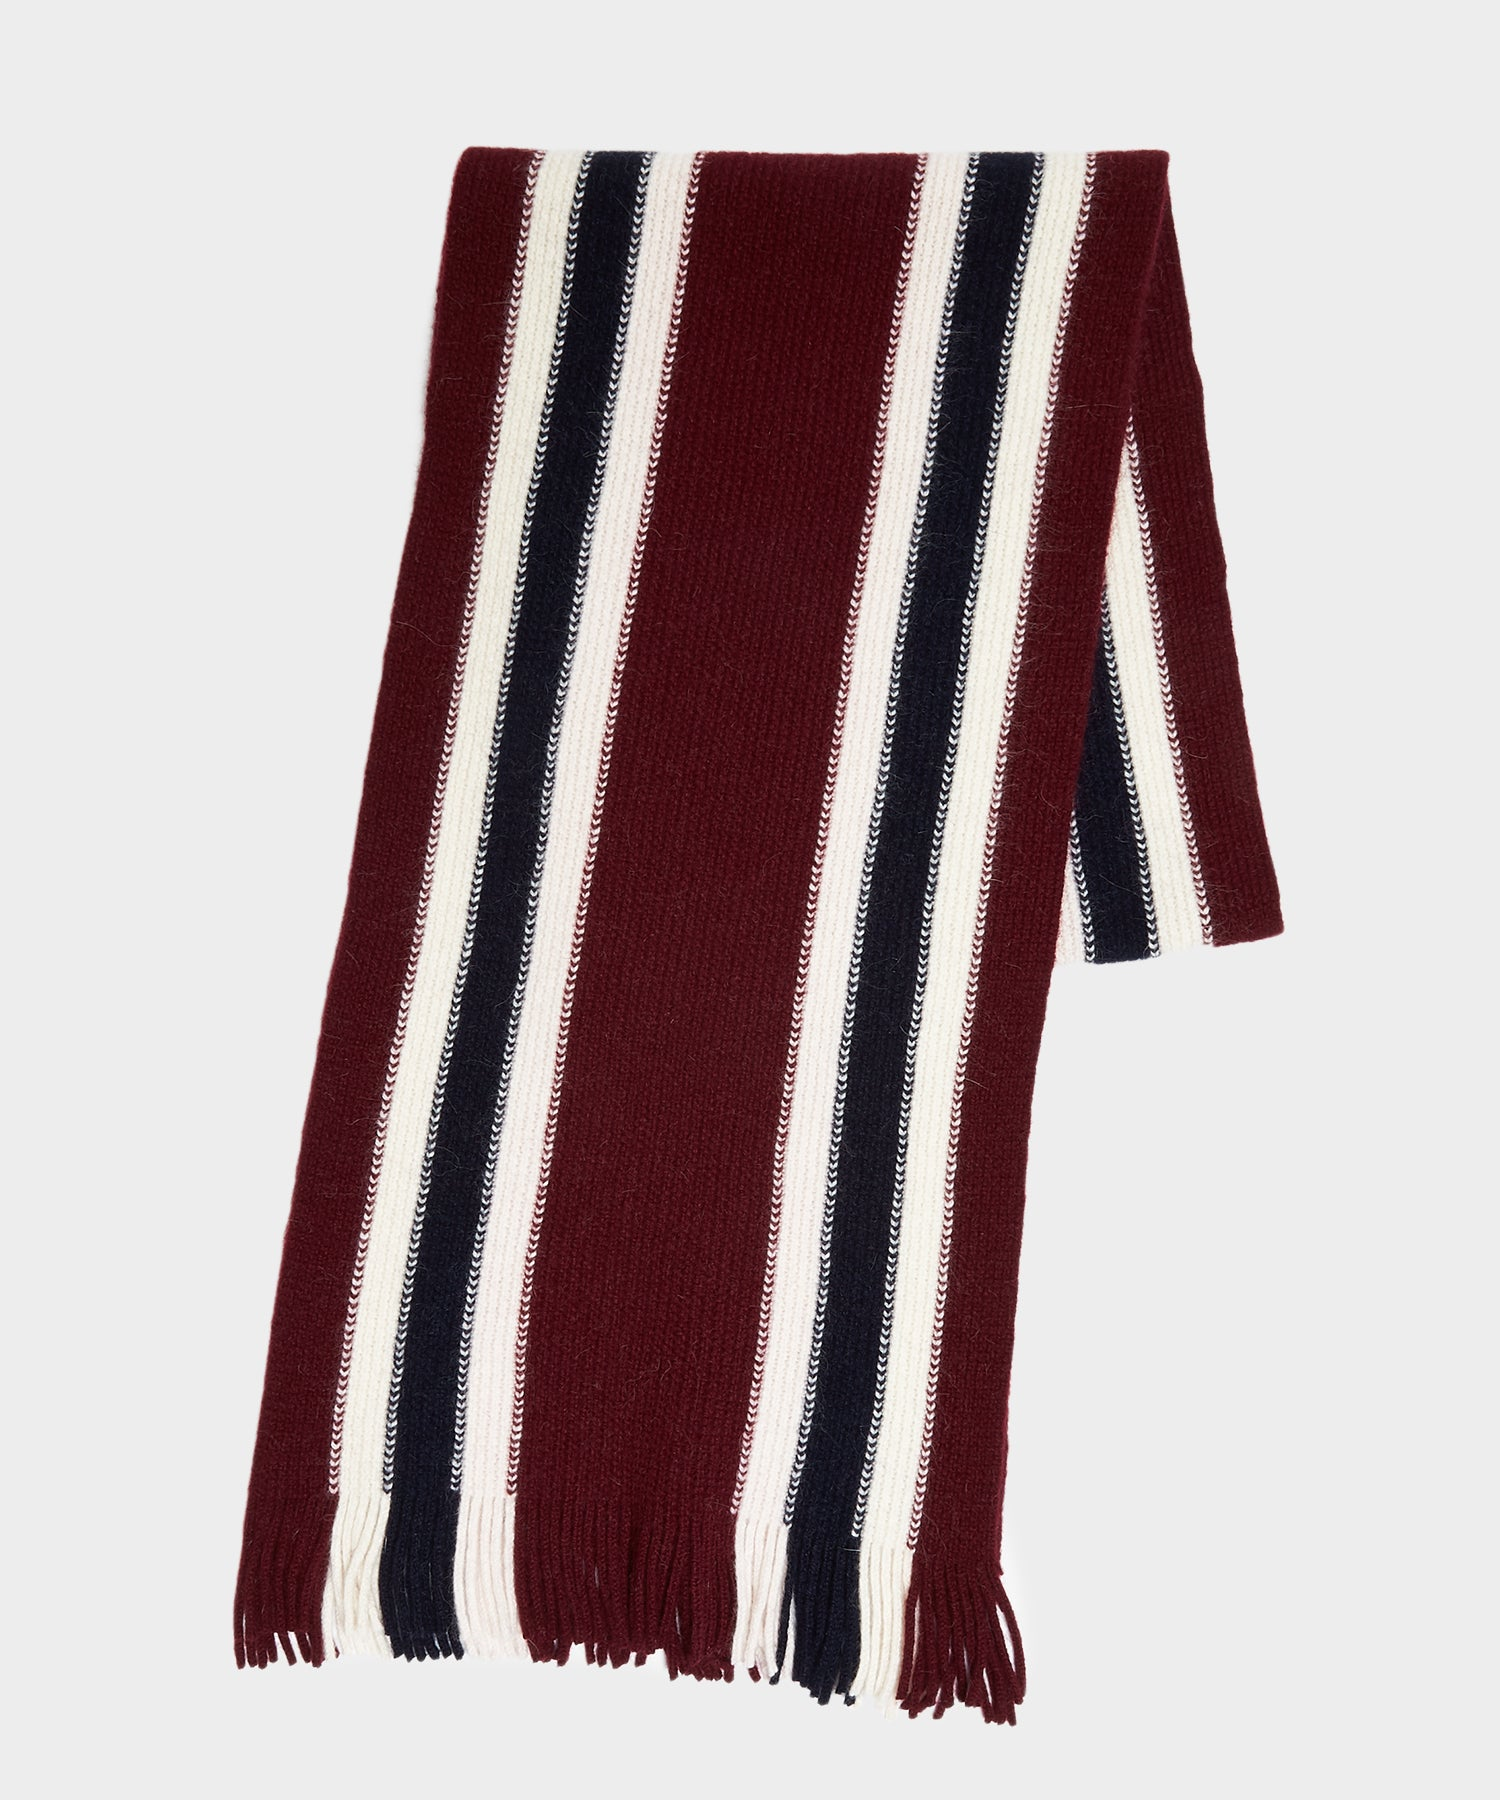 Drake's Collegiate Striped Scarf in Burgundy